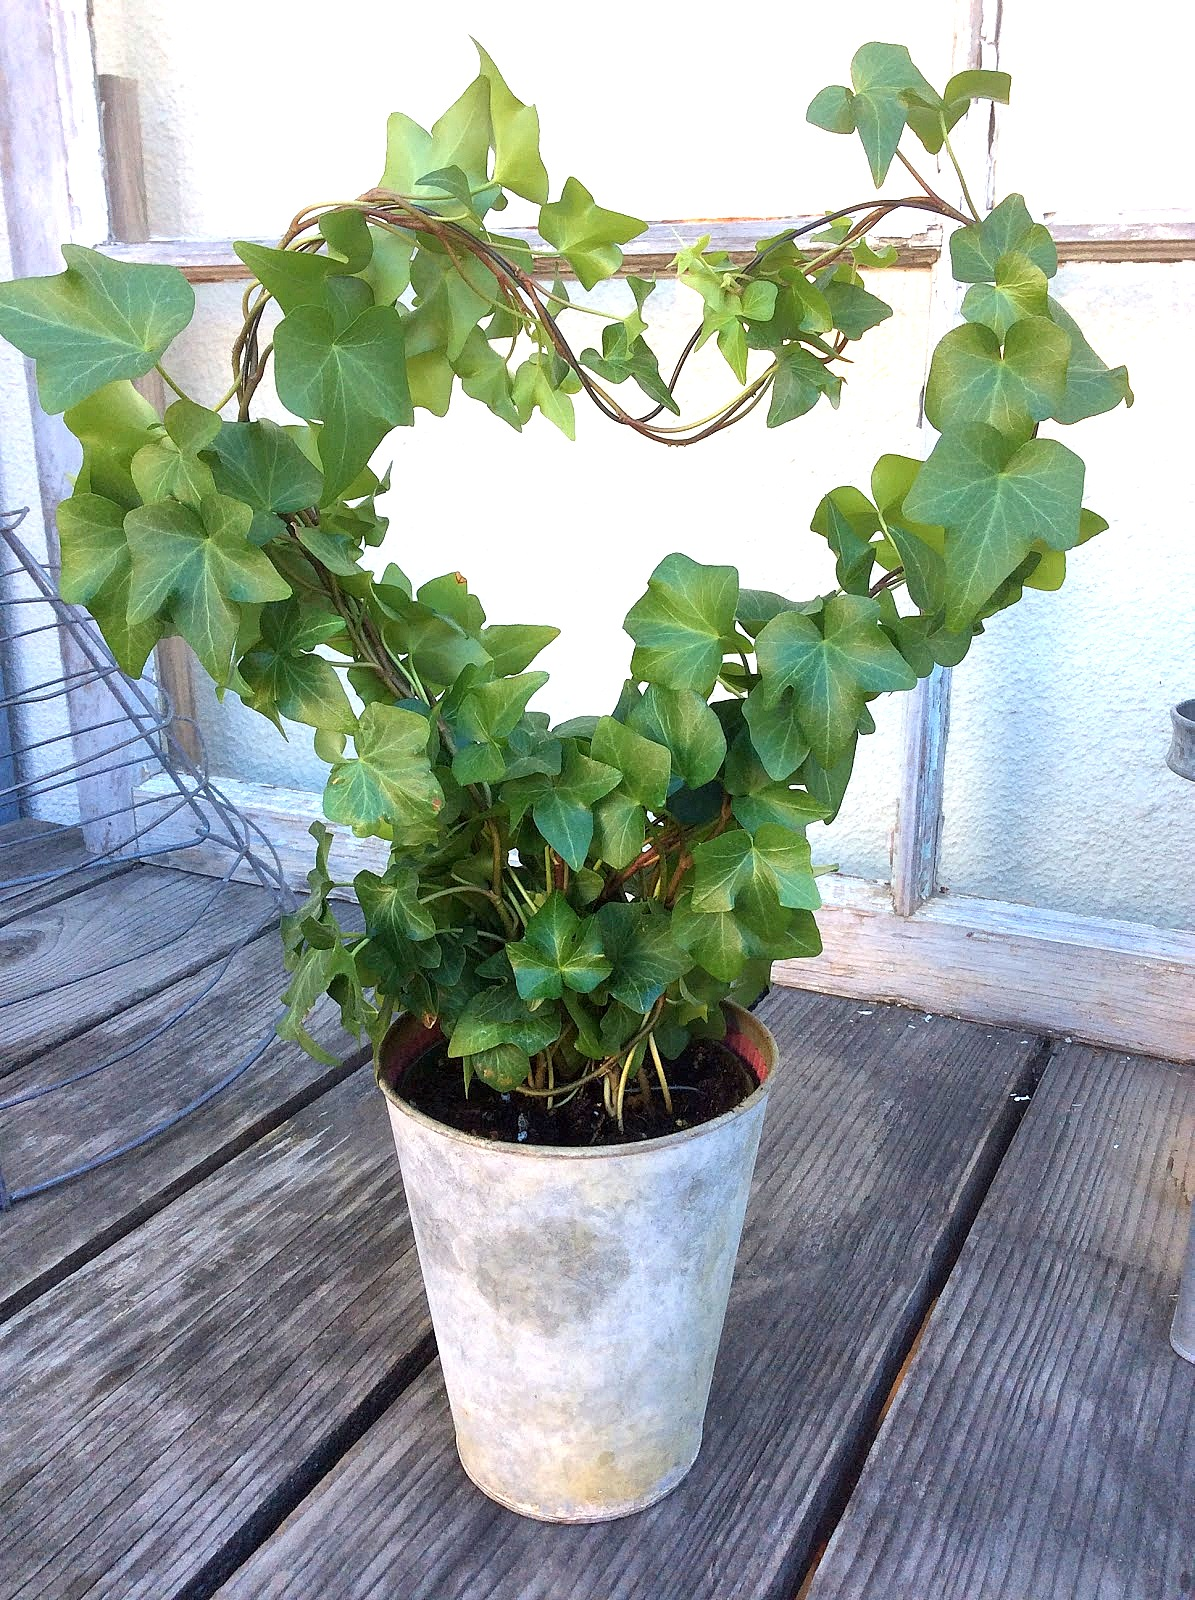 Heart shaped ivy plant by Fresh Vintage By Lisa S, featured on DIY Salvaged Junk Projects 513 on Funky Junk!